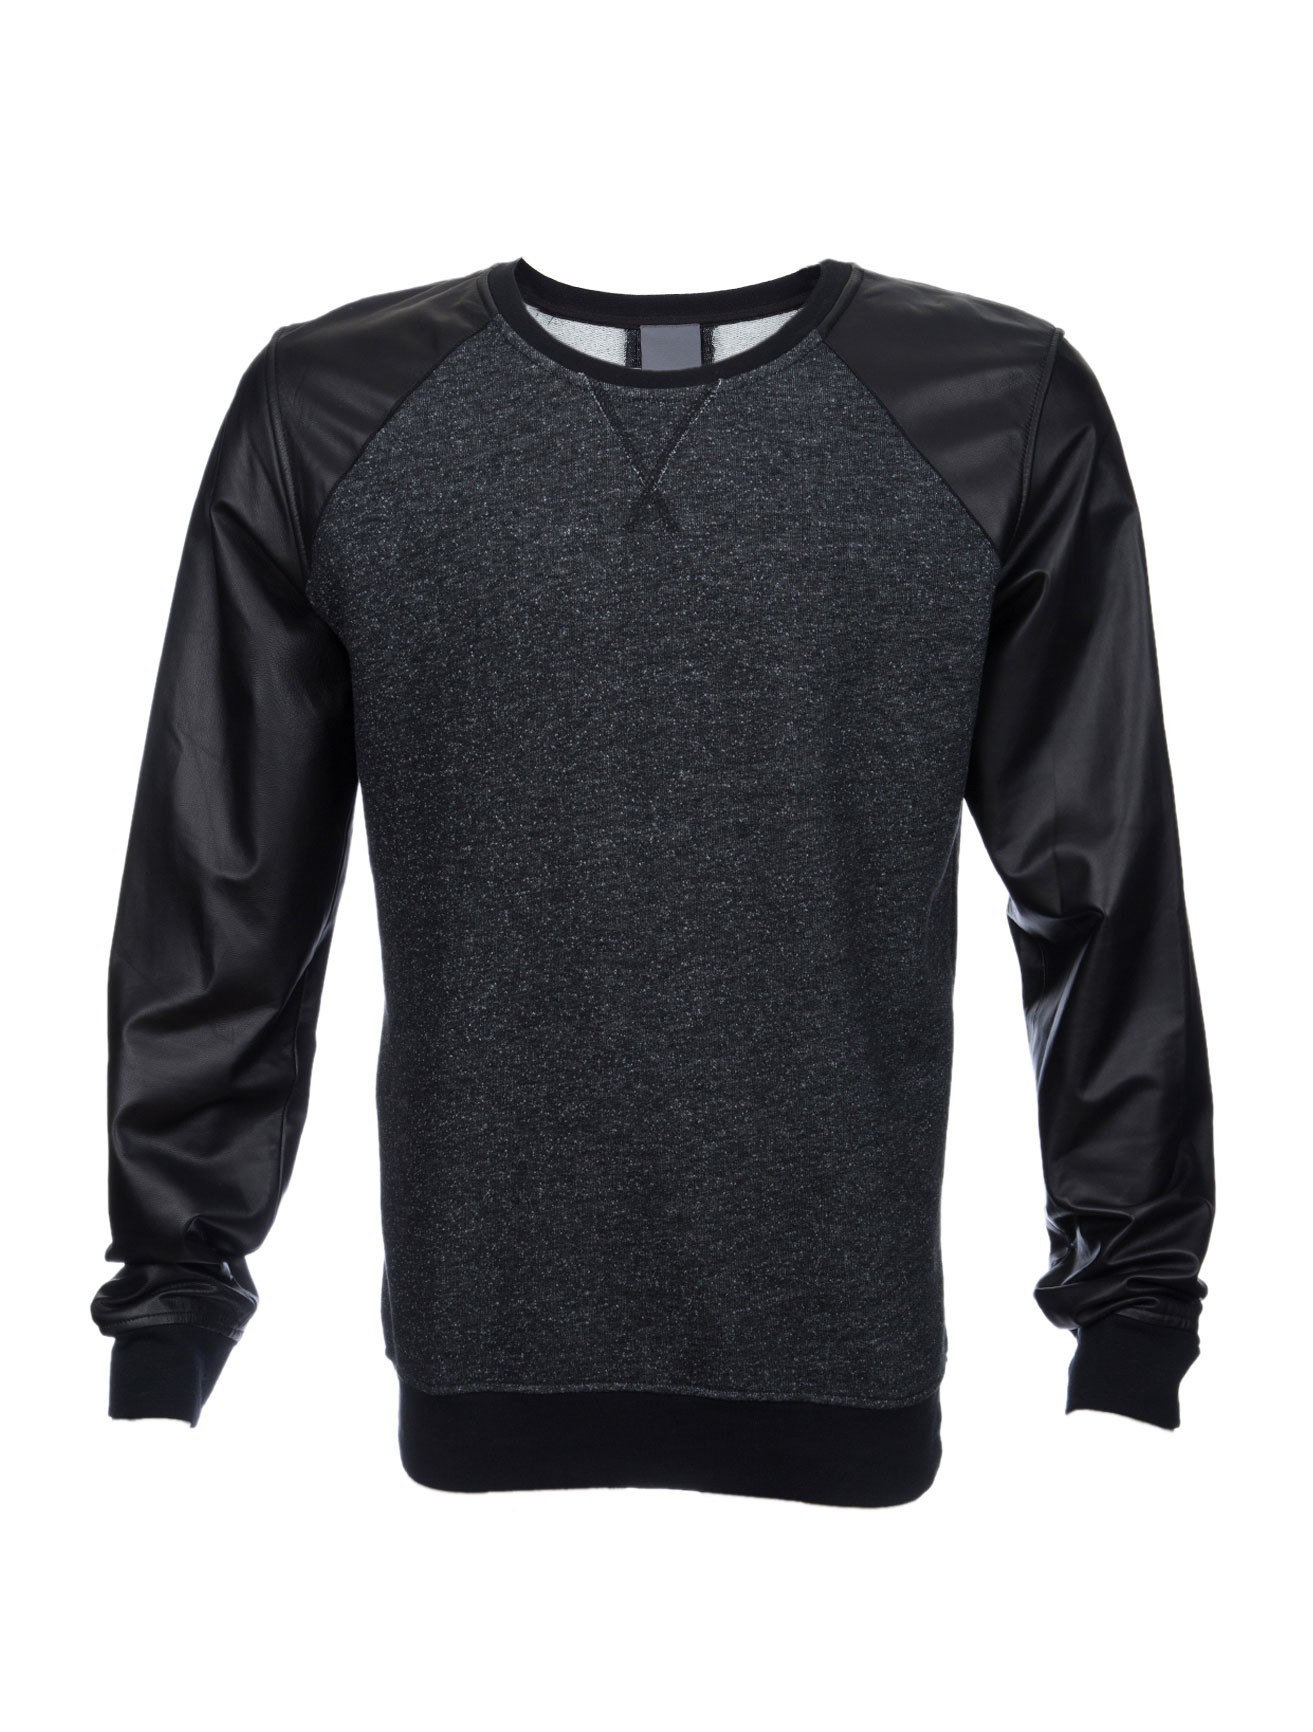 This long sleeve shirt features a round neck and faux leather panel sleeves, making it a cool modern shirt. It look NEW Kenneth Cole Reaction Long Sleeve Sweatshirt Men's Small Black Leather Look.